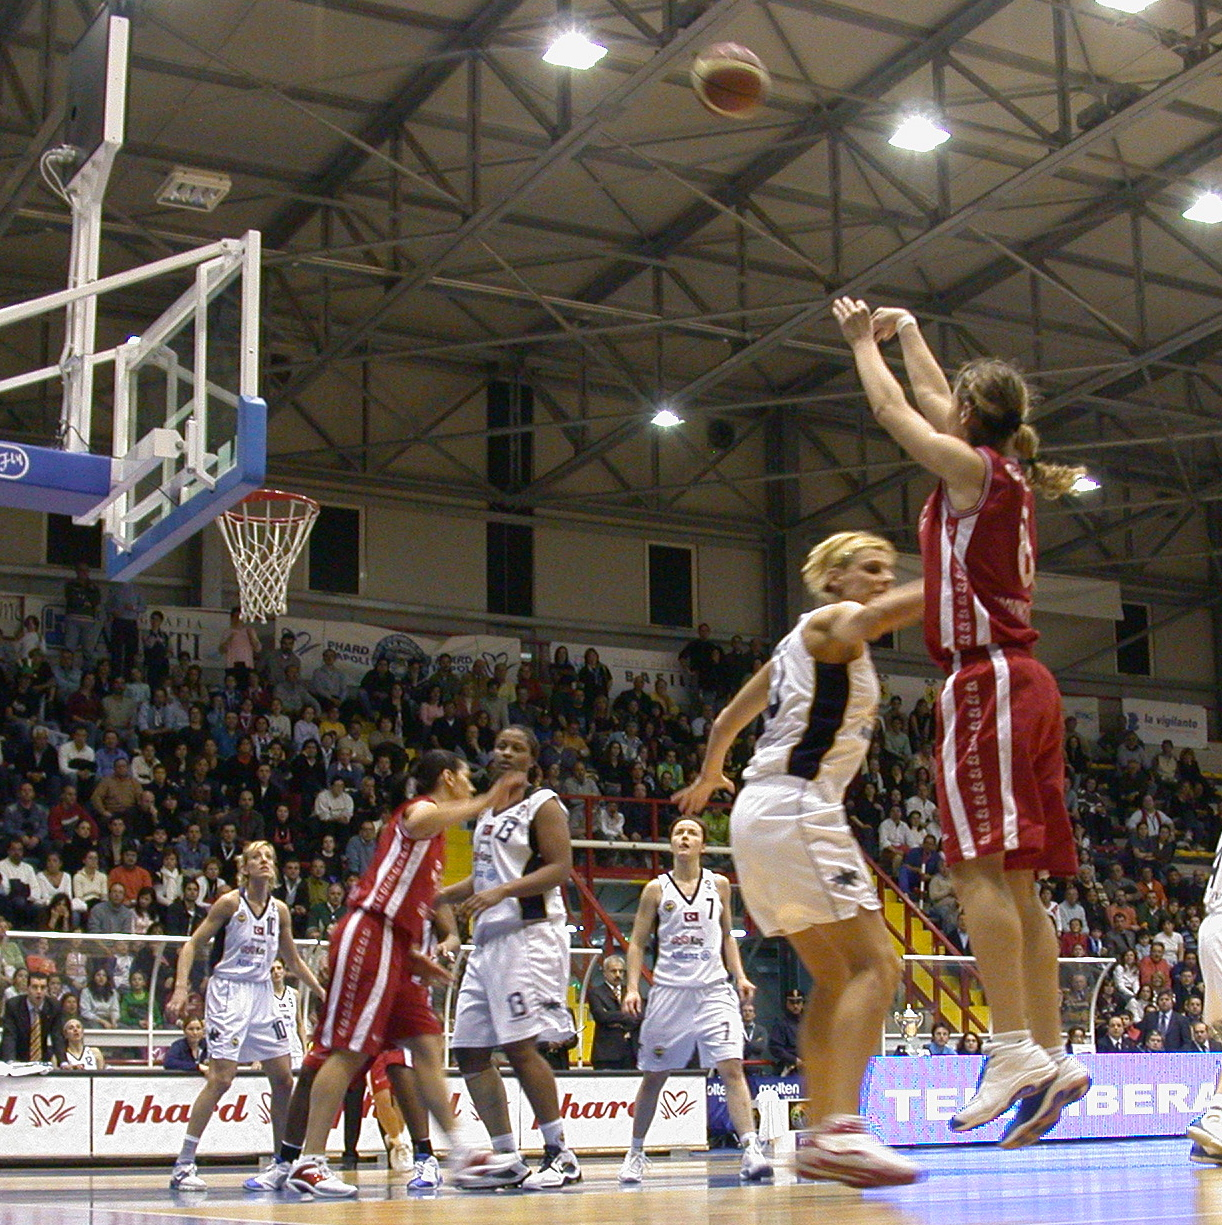 Description: Three point shoot by ...